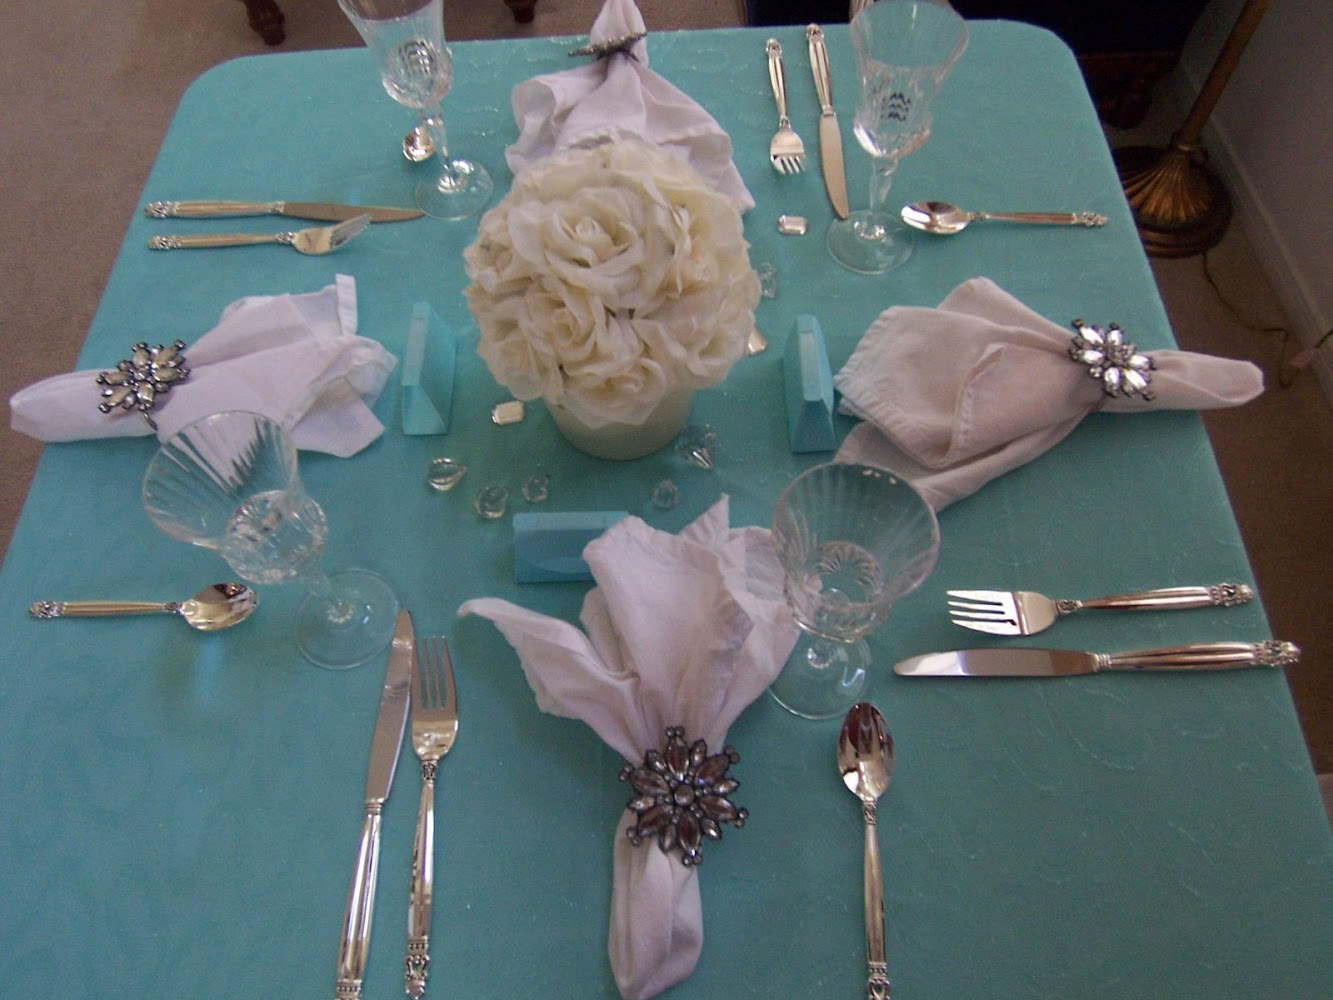 The table is set... ..